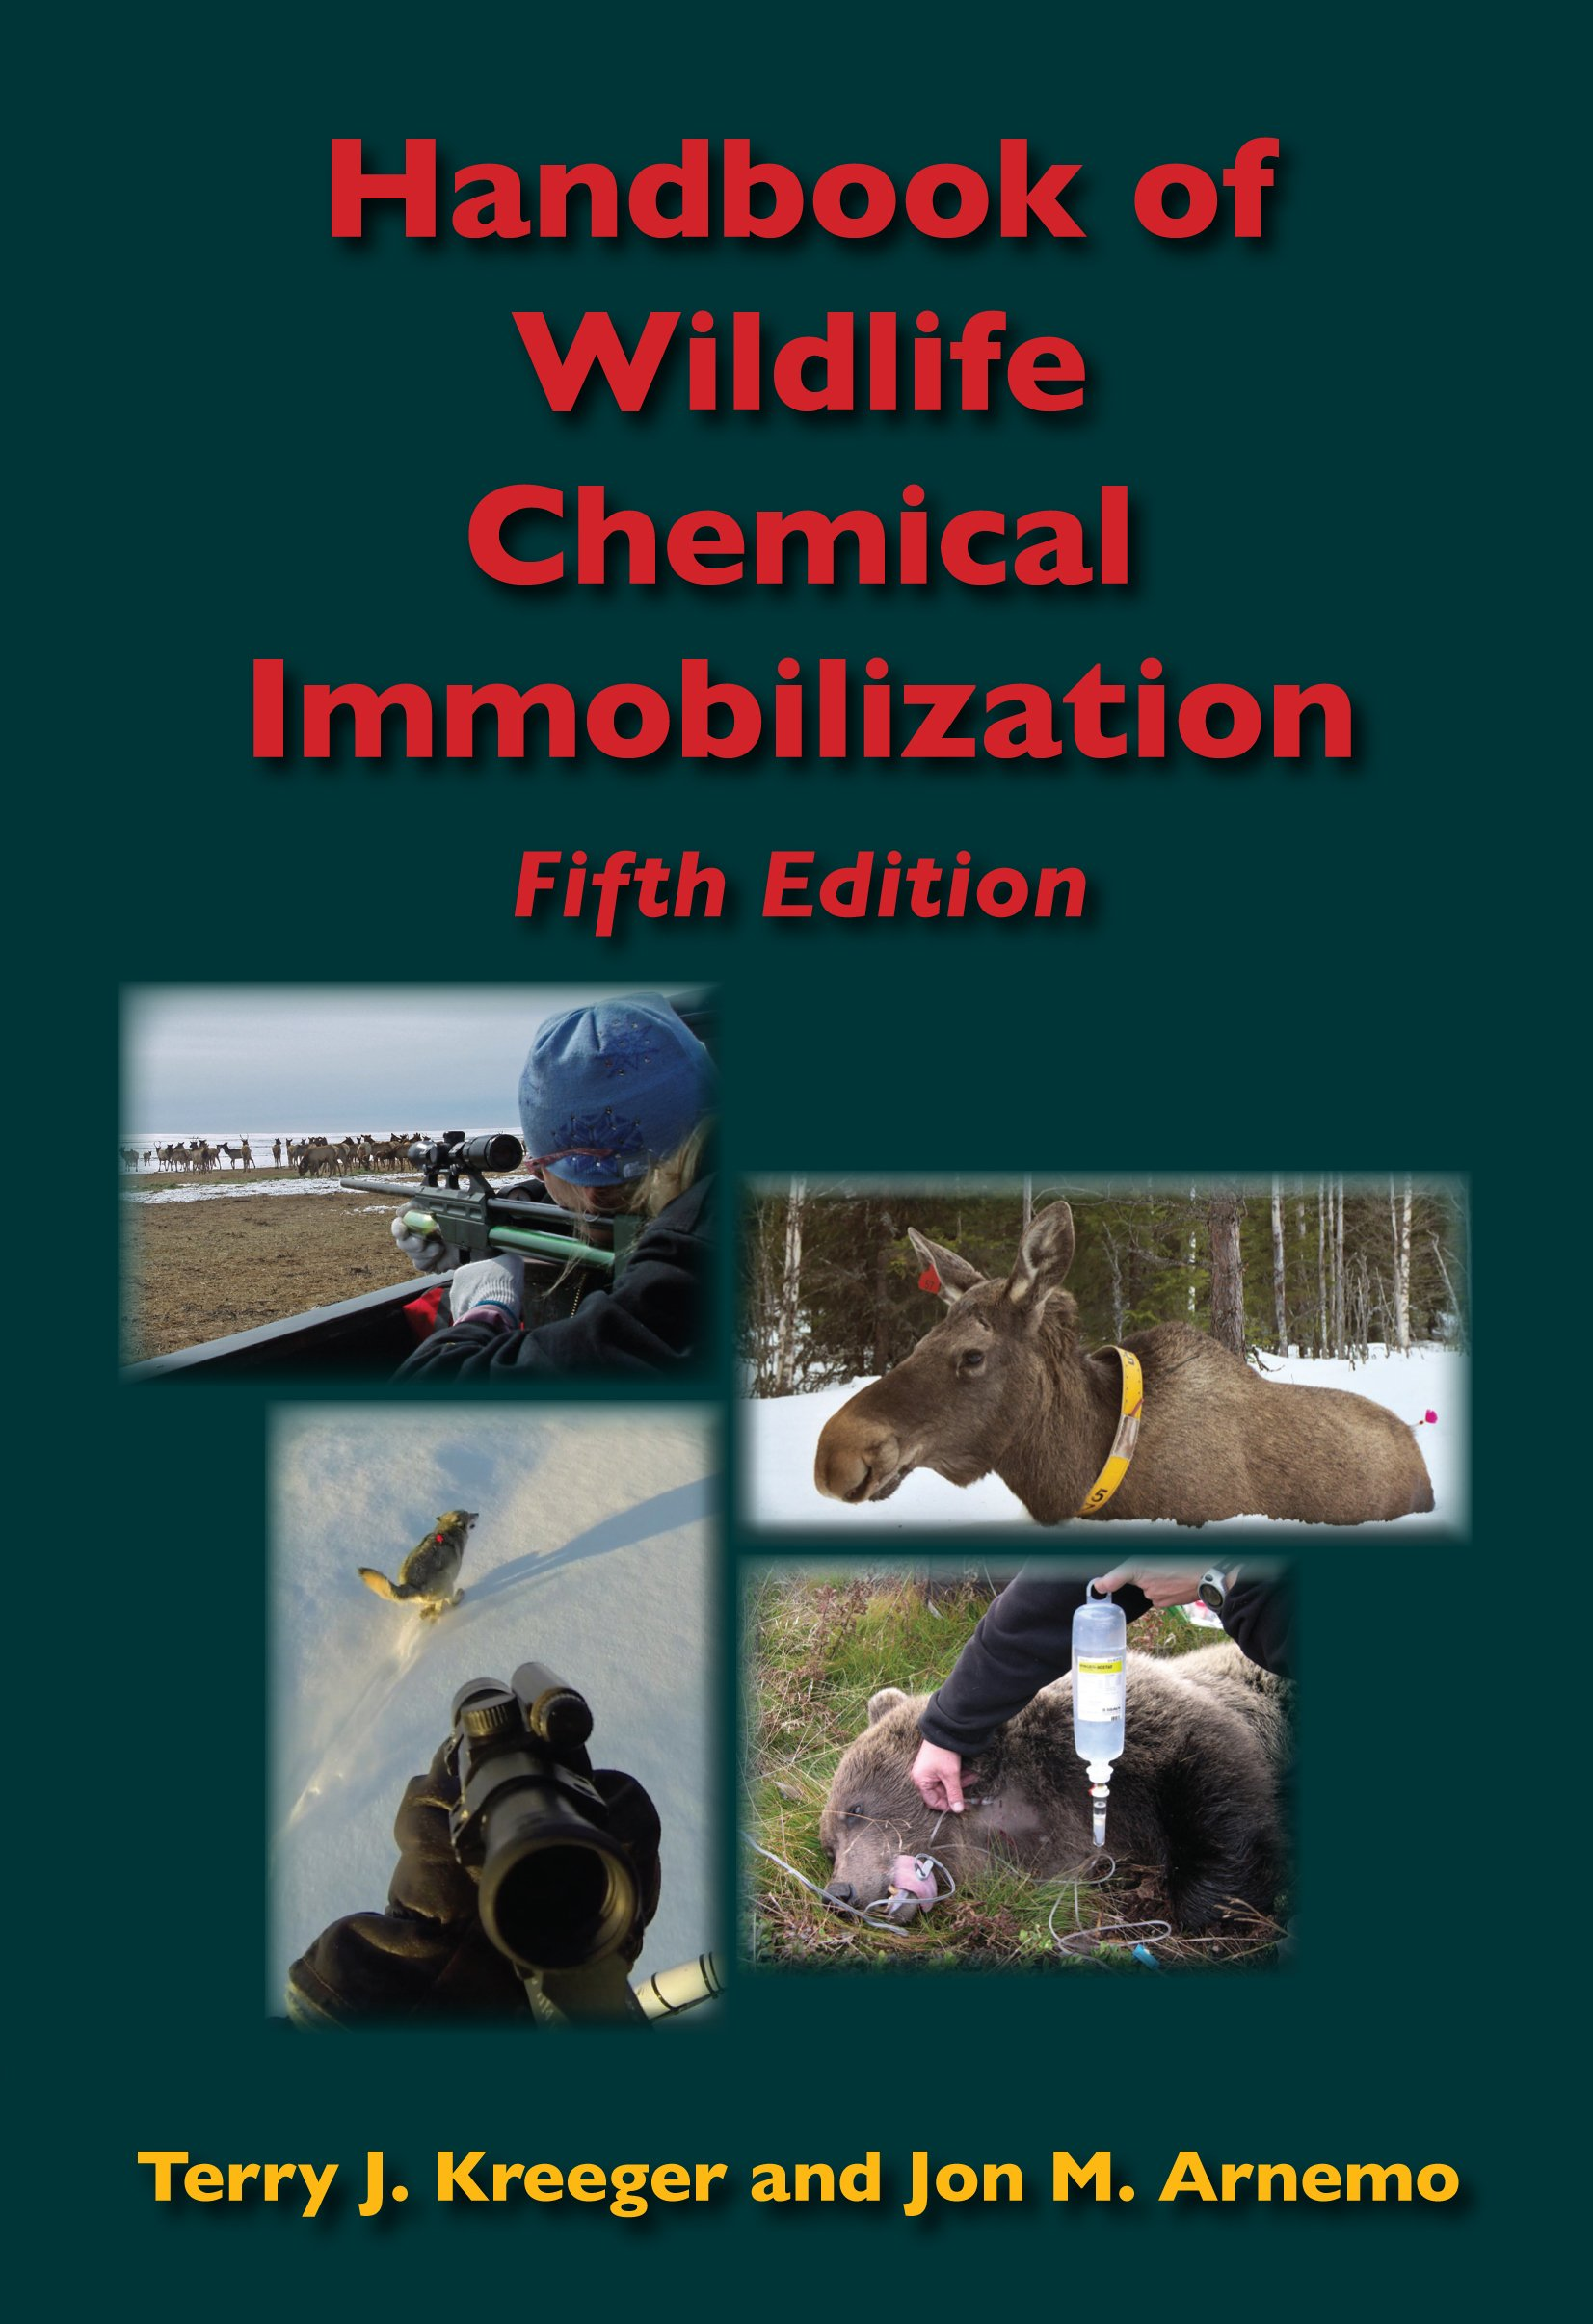 Wildlife Chemical Immobilization 5th Edition